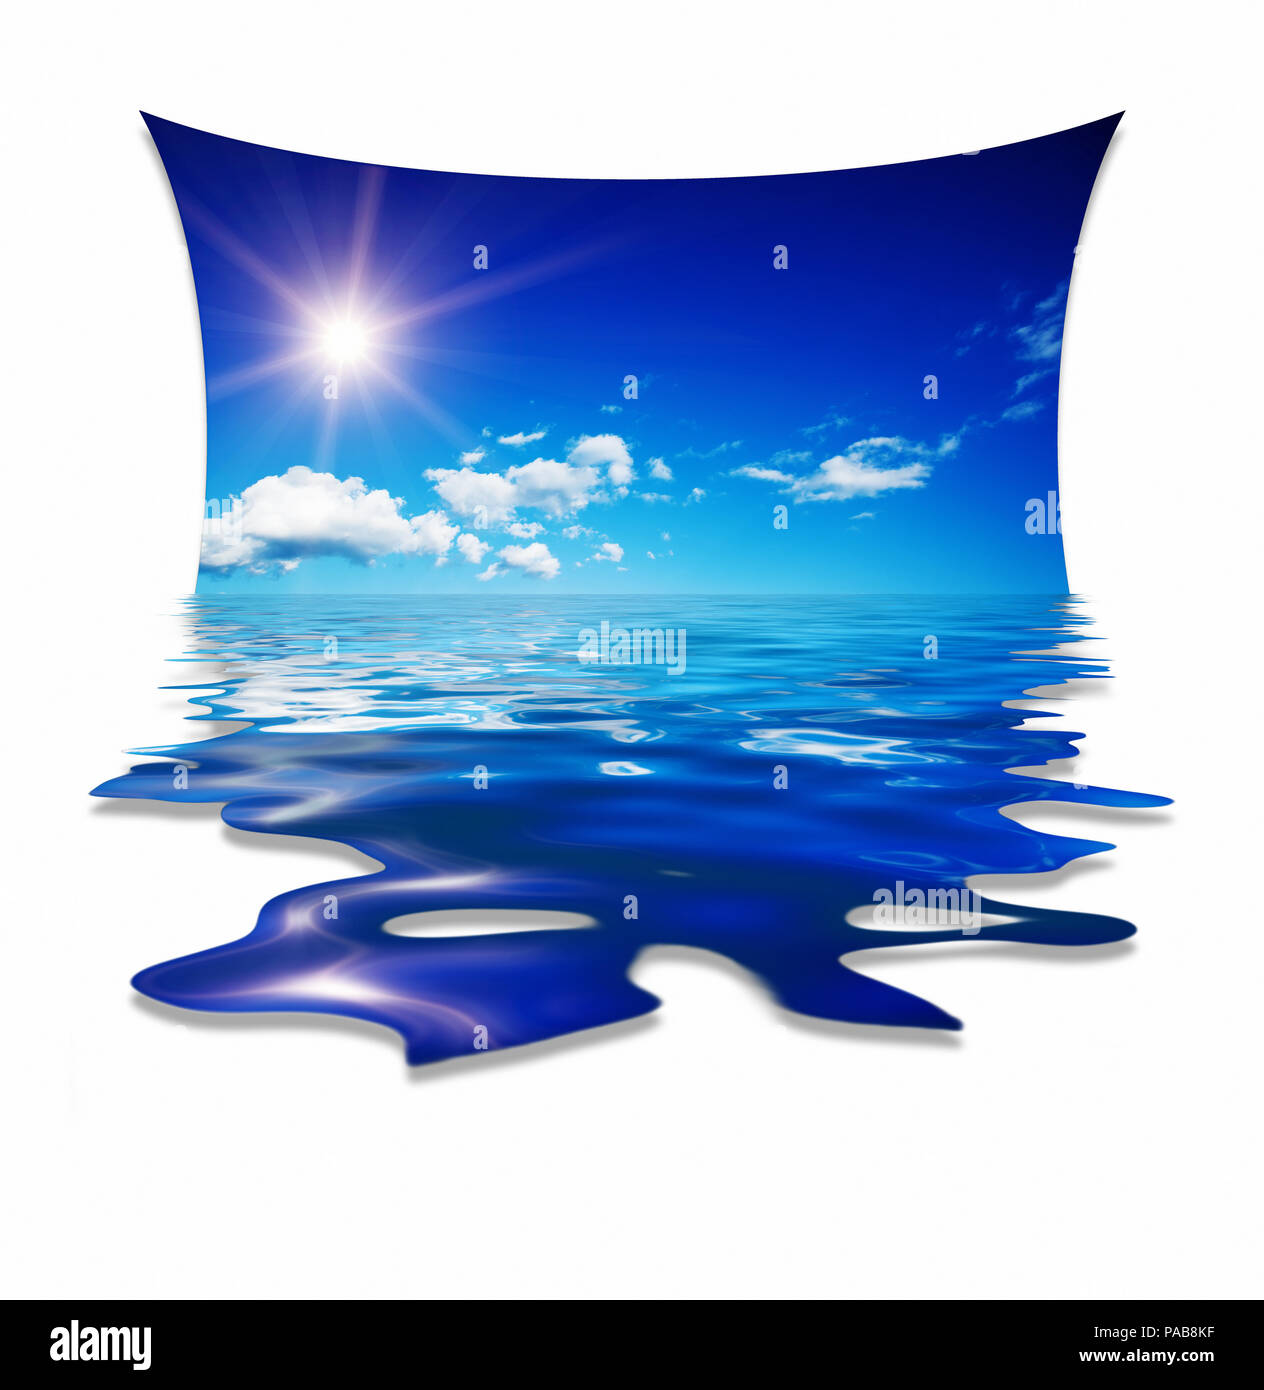 An illustration of a nice blue sky water design - Stock Image